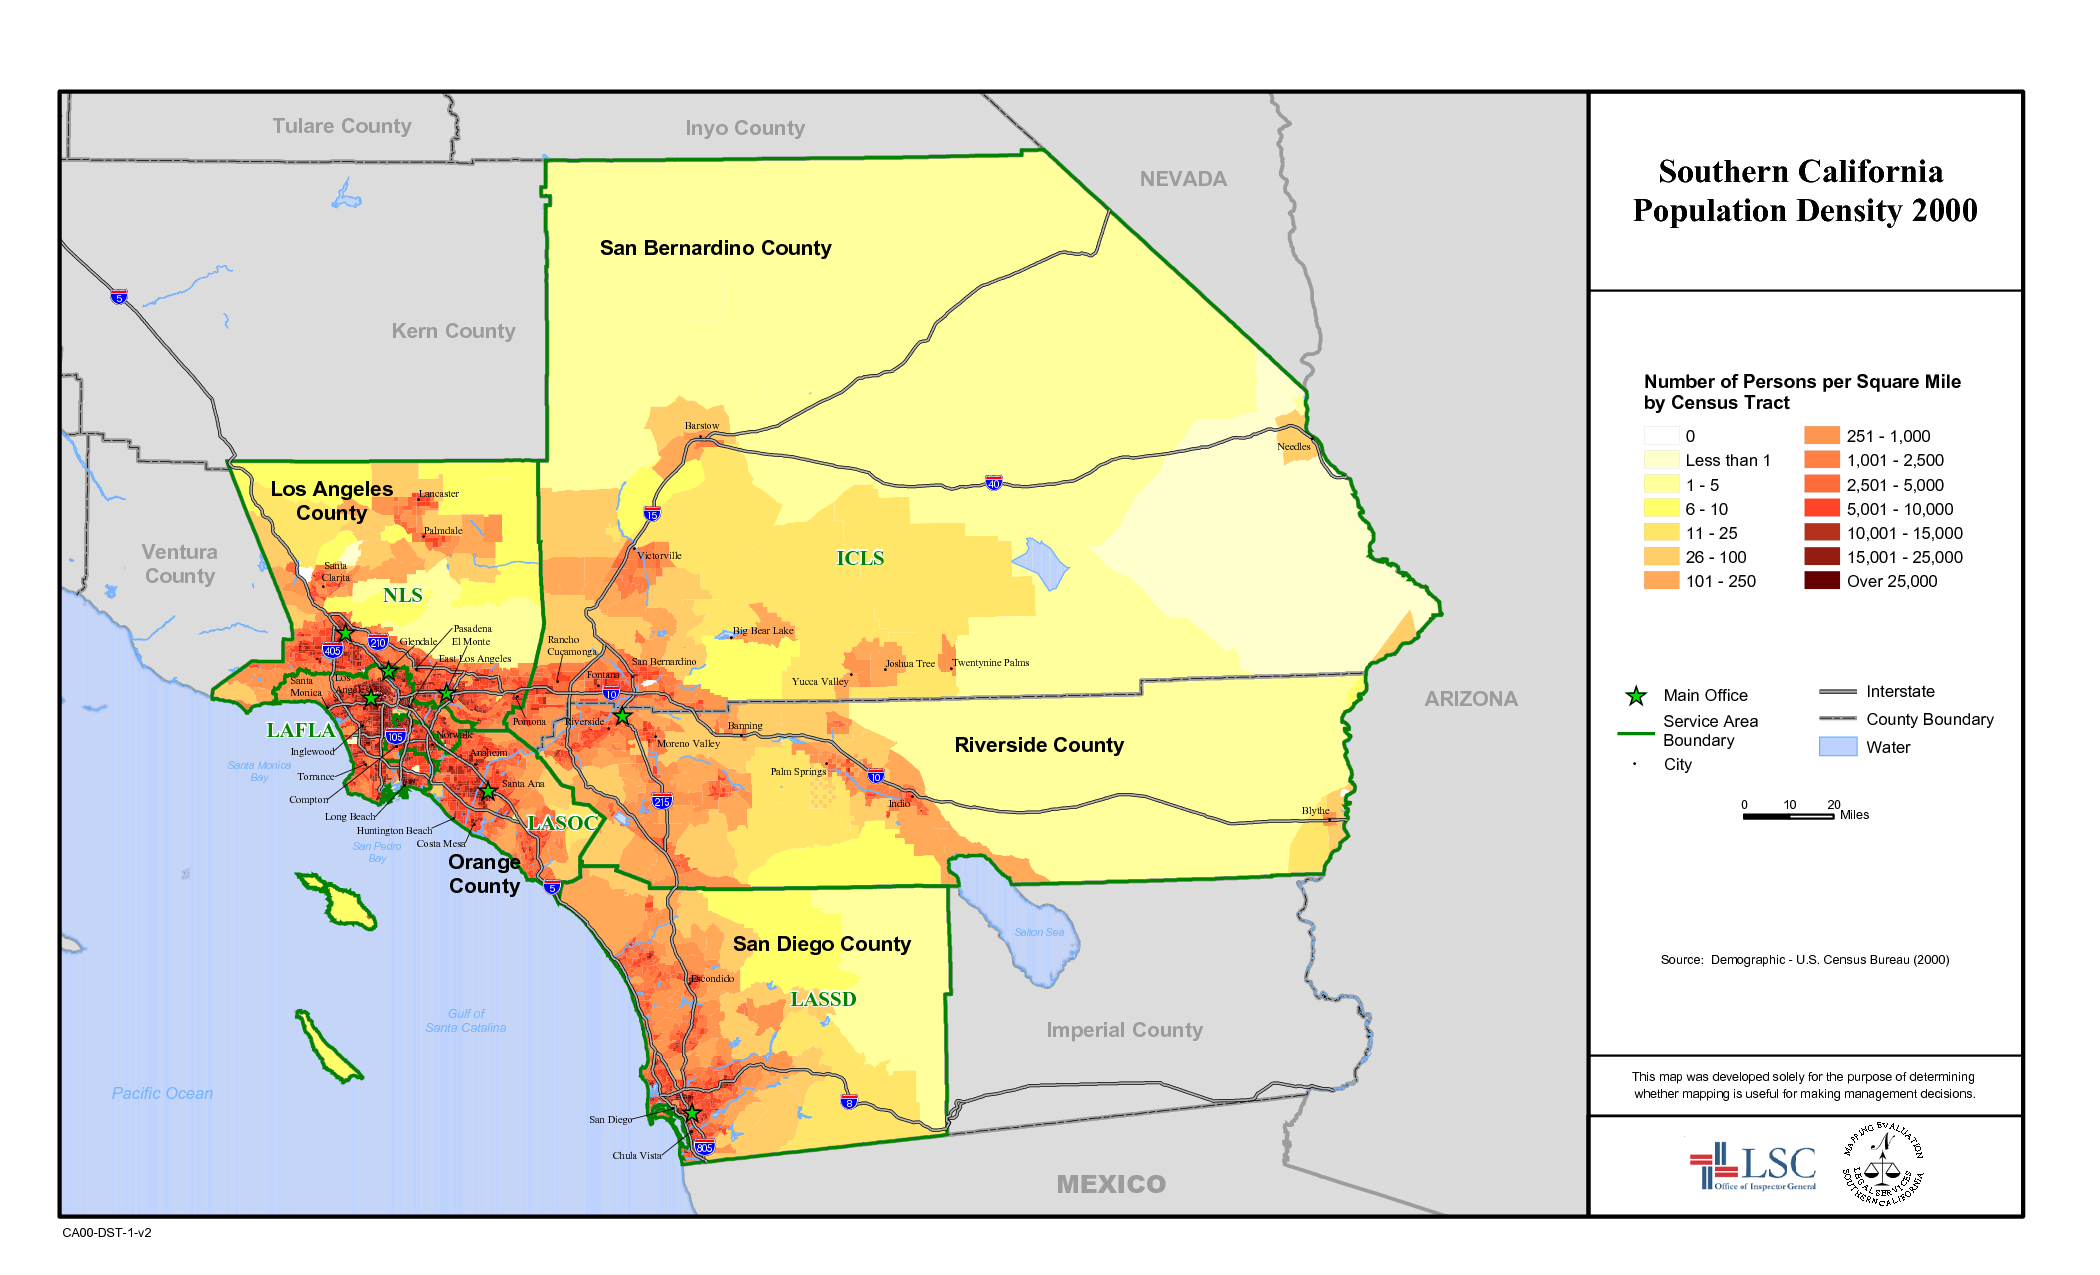 USA County Population Map Individual States In Comments - Population density map us census california